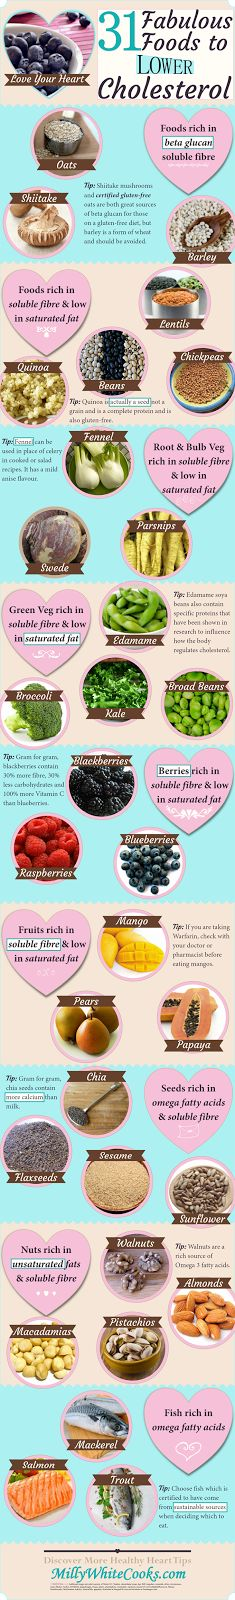 Best 25 foods that lower cholesterol ideas on pinterest foods best 25 foods that lower cholesterol ideas on pinterest foods to lower cholesterol cholesterol and cholesterol lowering foods forumfinder Images